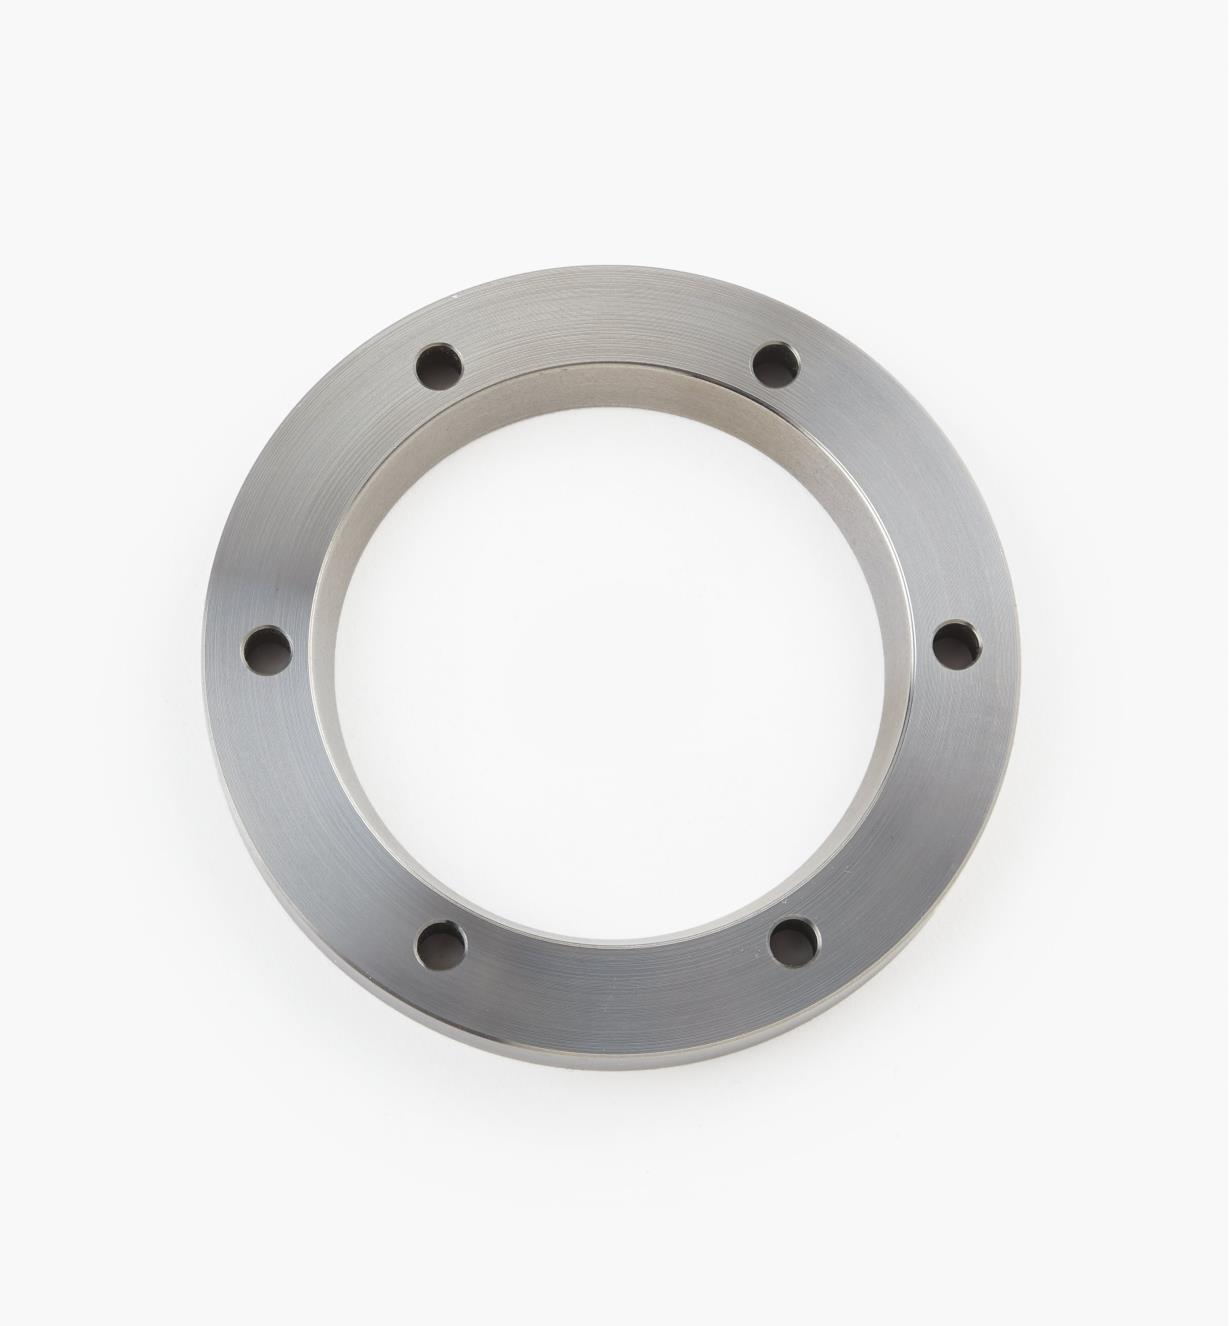 "58B4089 - Axminster Faceplate Ring, 69mm (2 11/16"") C Jaws"